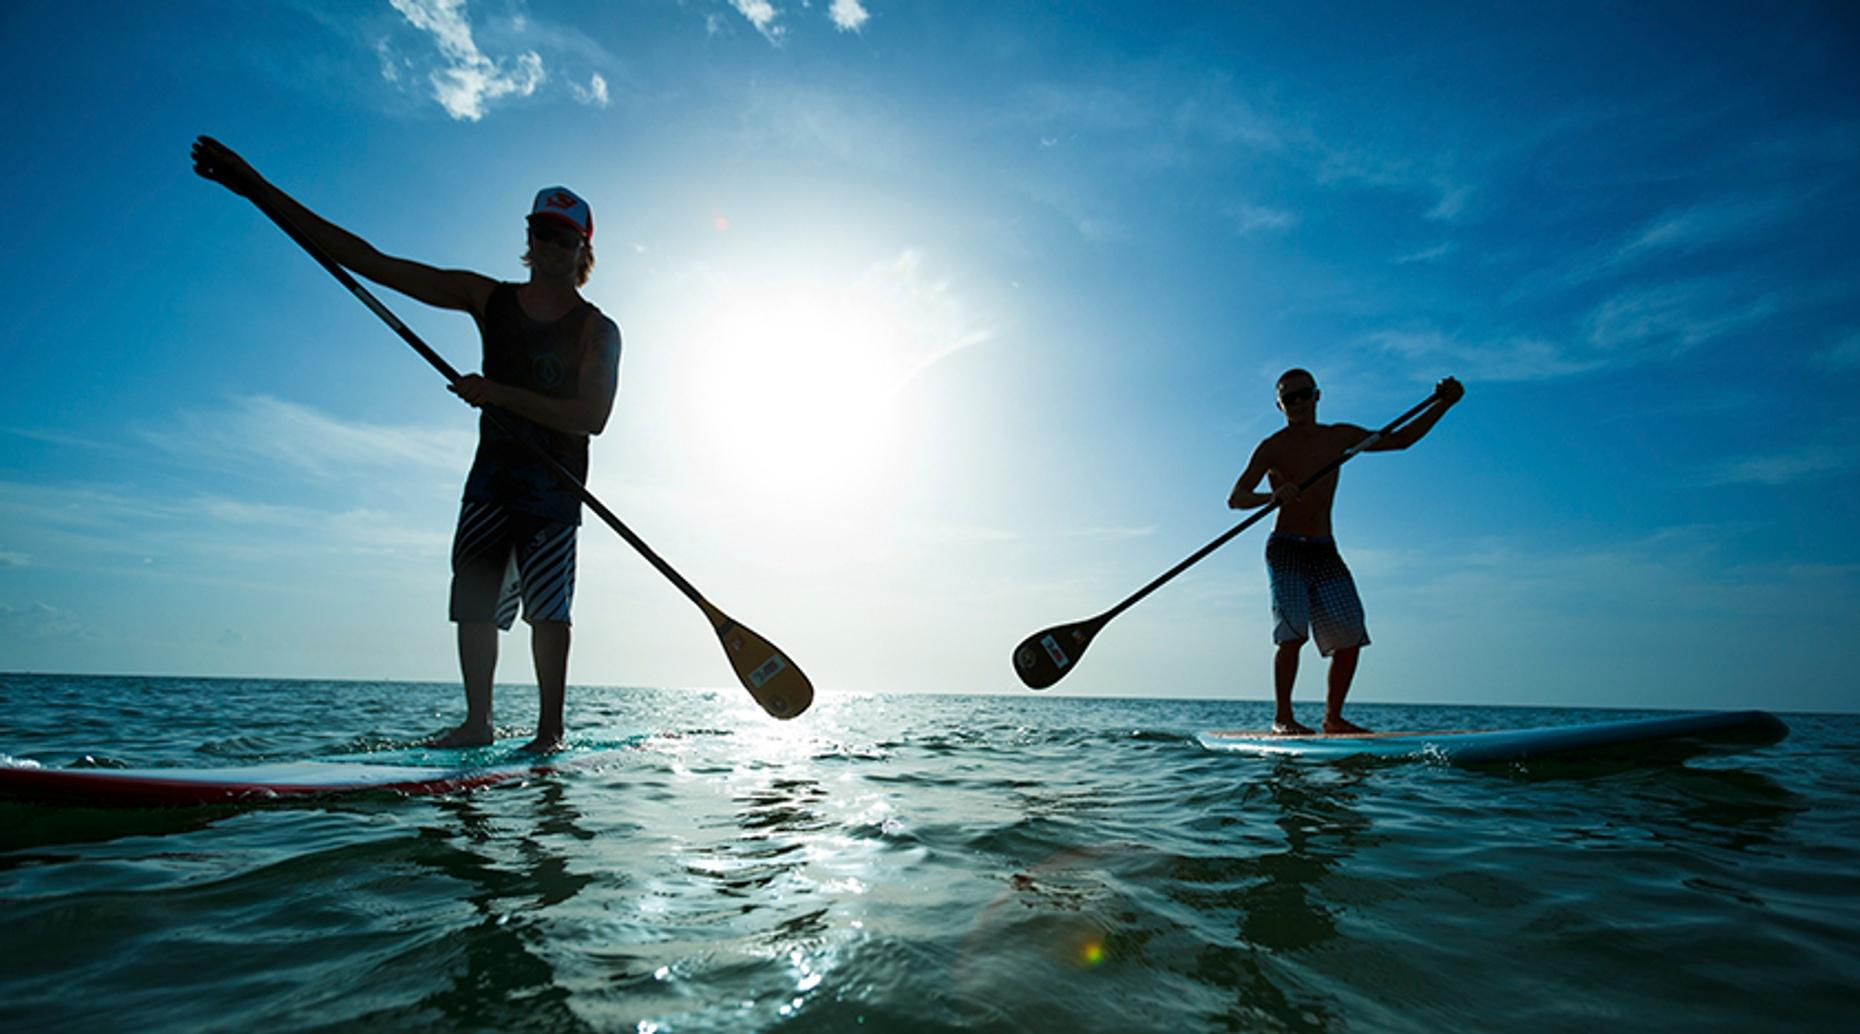 Pontoon Ride, Kayaking, and SUP Adventure in Clearwater